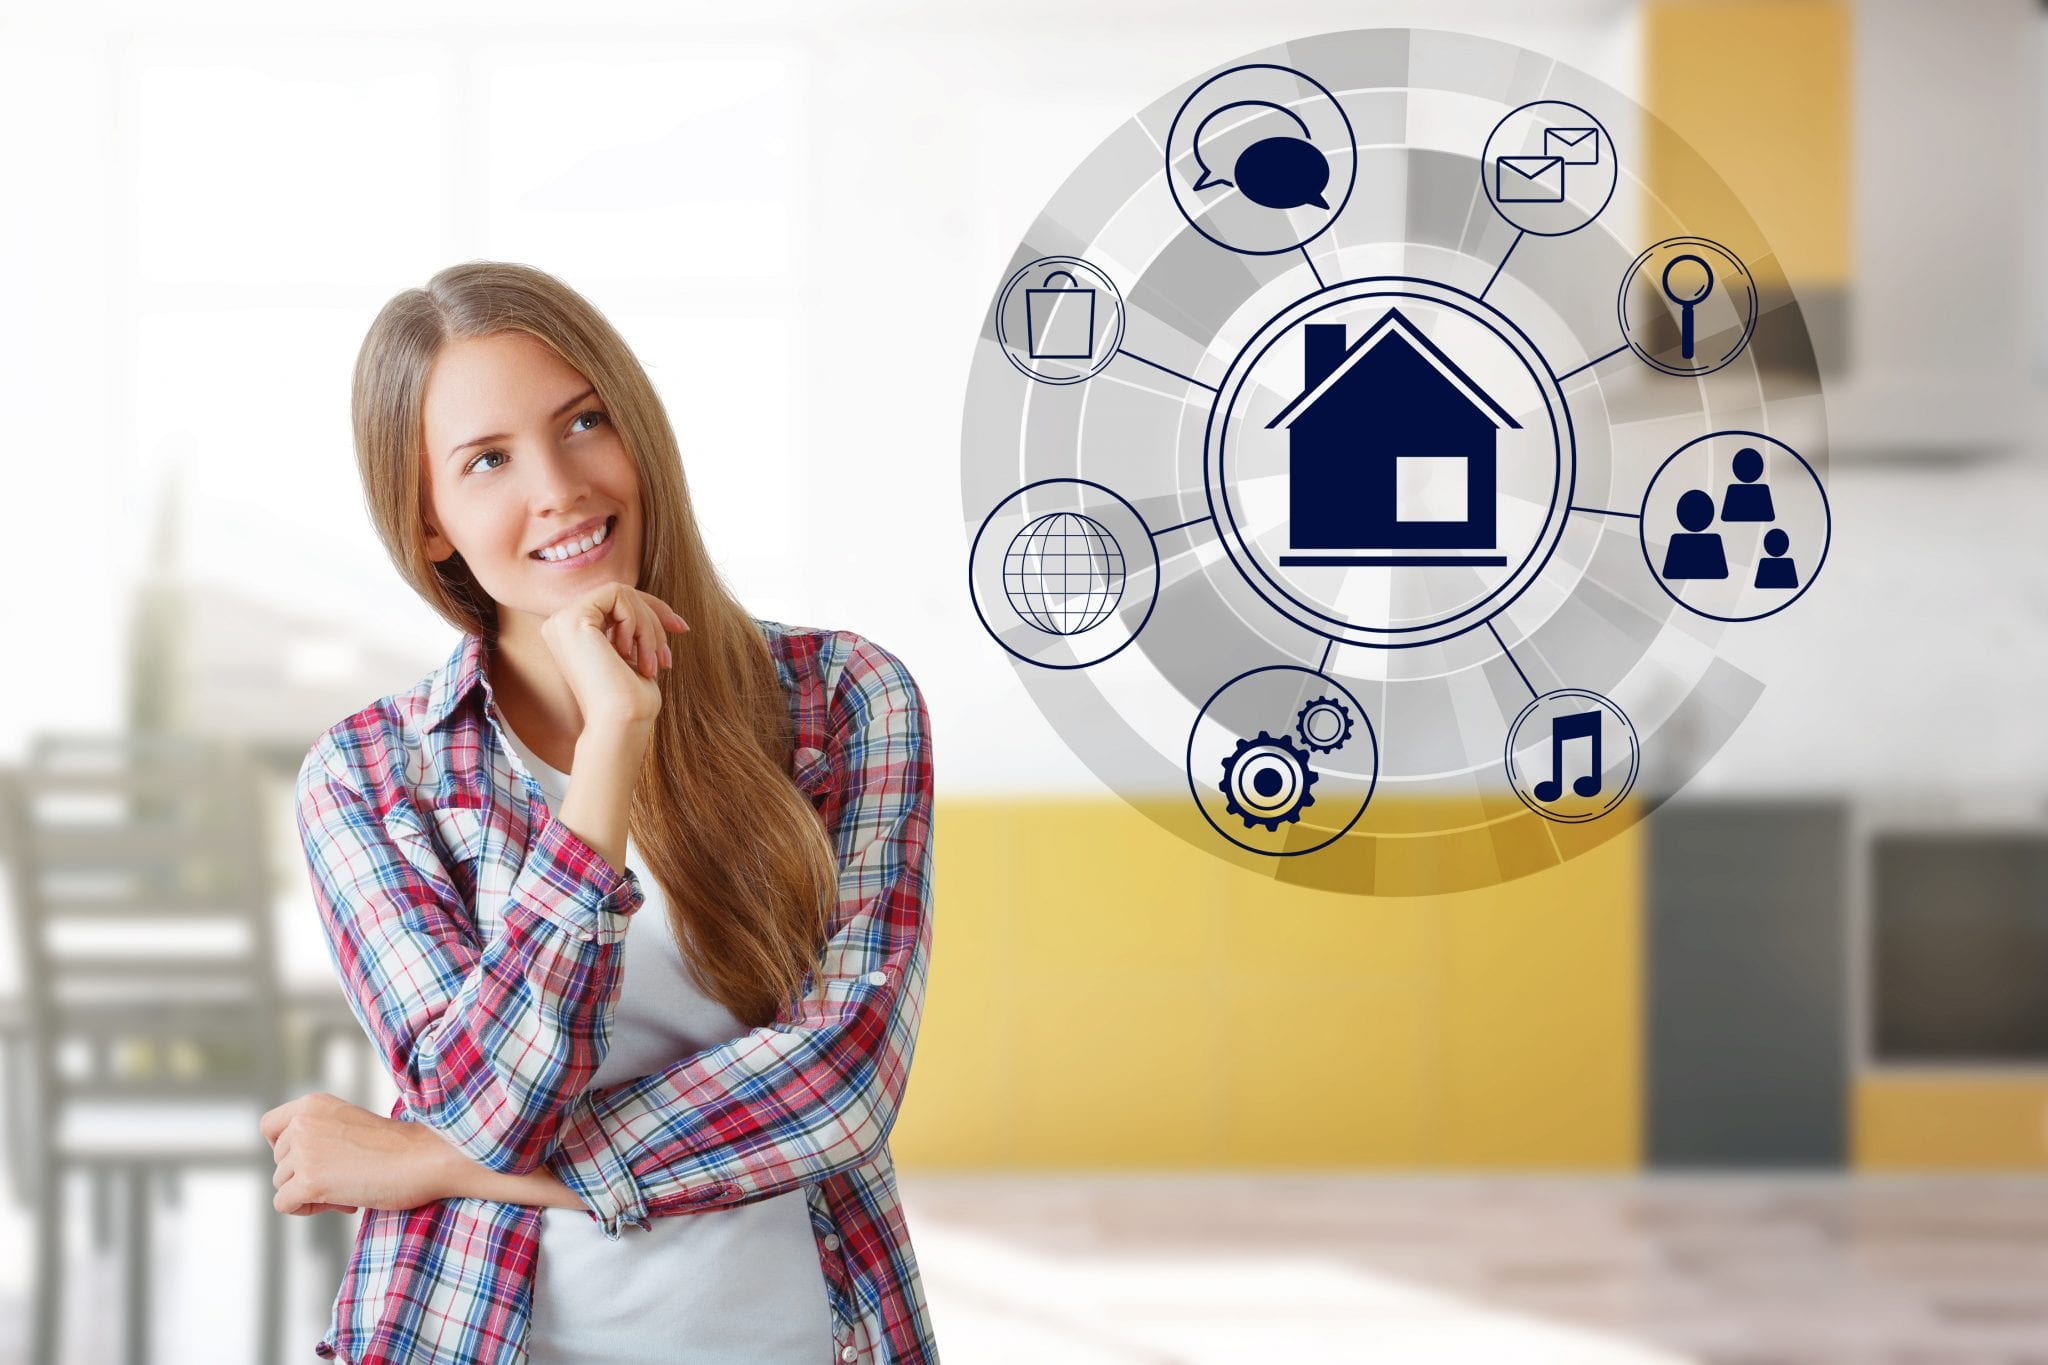 Smart Homes: What They Are and How They Work